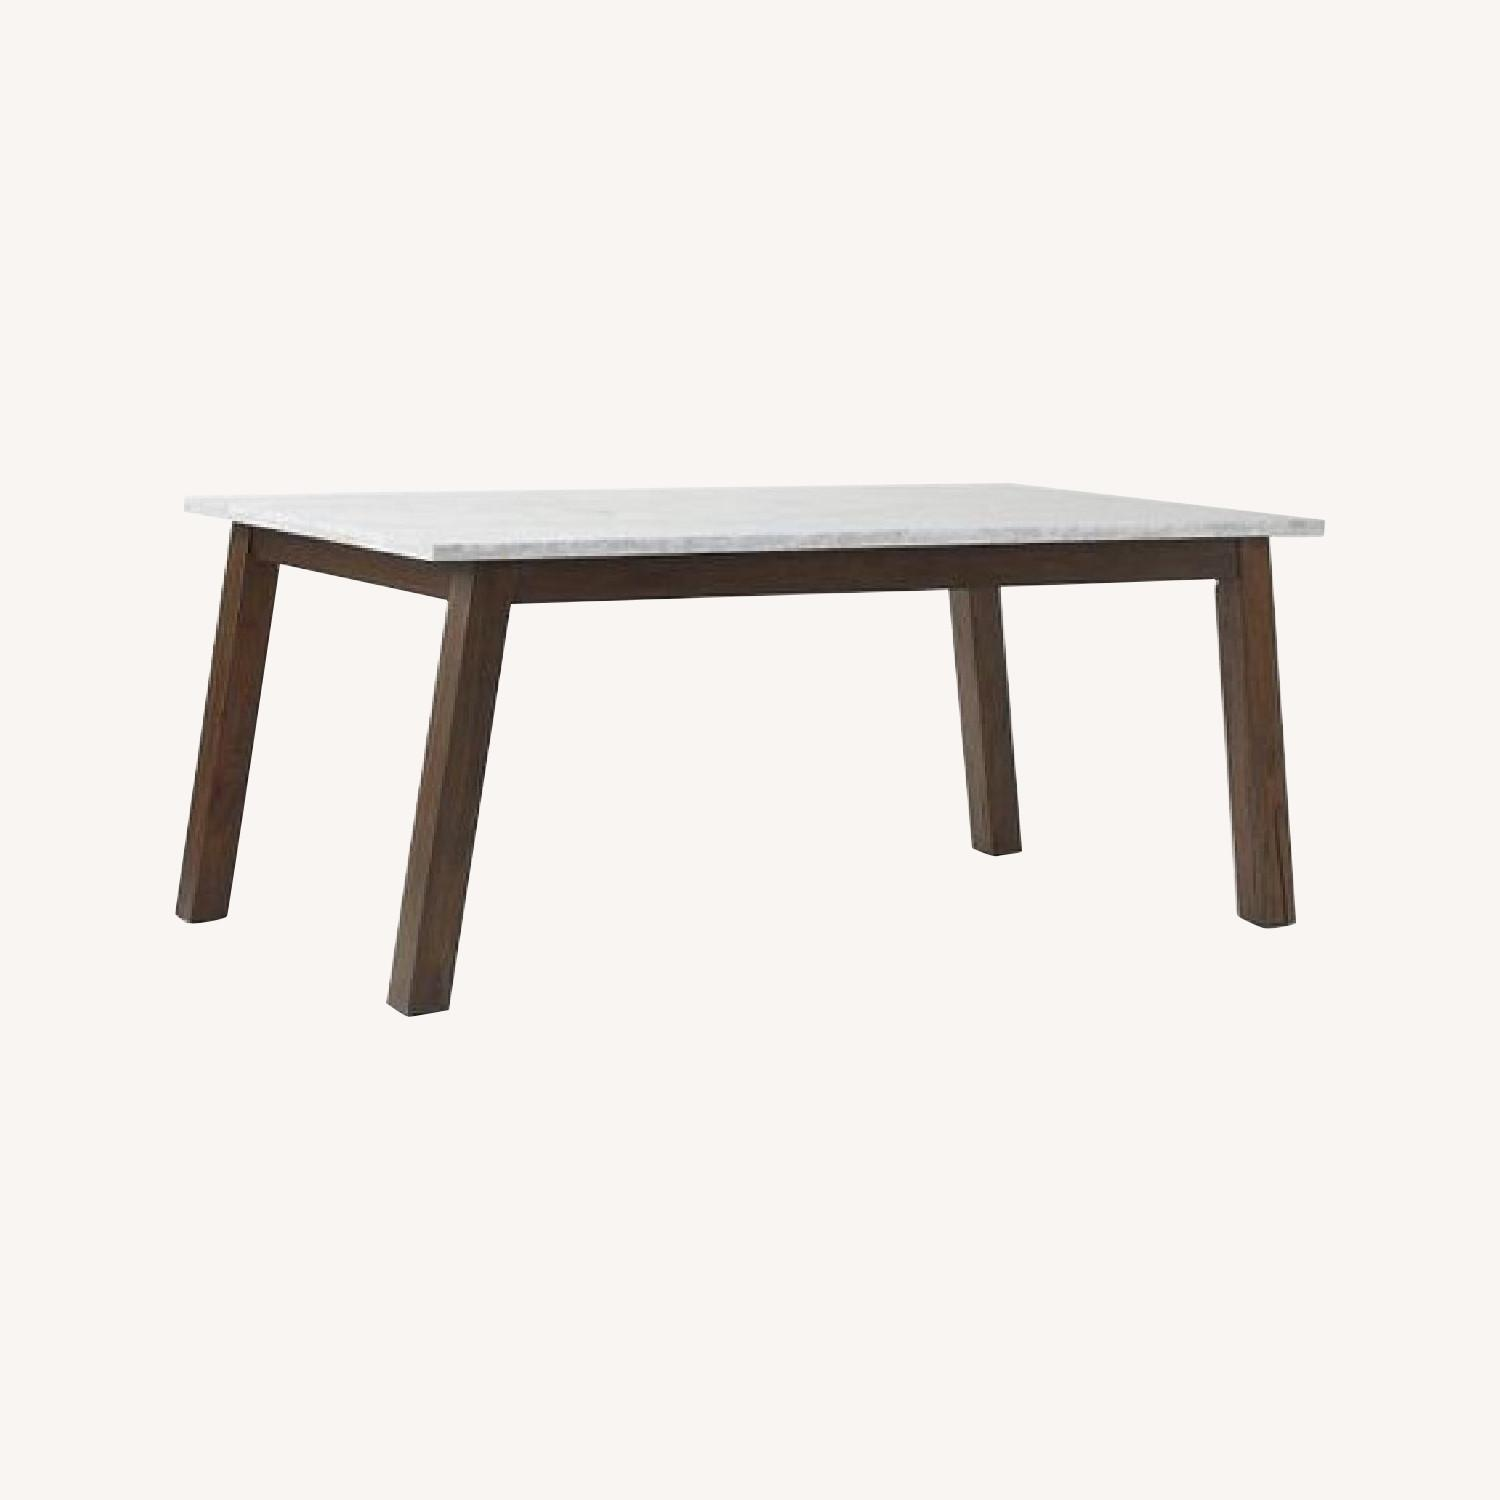 West Elm Marble & Wood Rectangular Dining Table - image-0